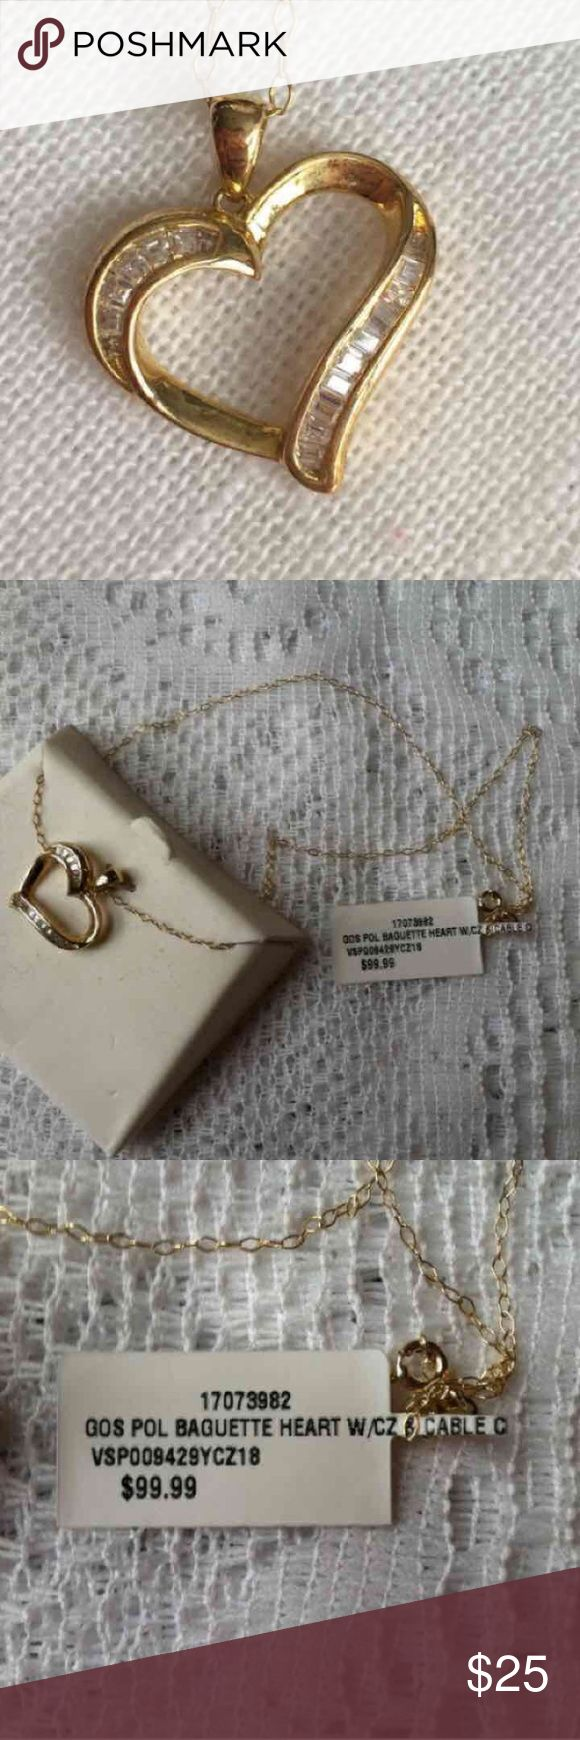 Cursive letter quot l quot cubic zirconia 14k gold finish pendant with 36 - Nwt Gold Over Silver Heart Necklace Brand New In Box Retail 99 99 Jewelry Necklaces